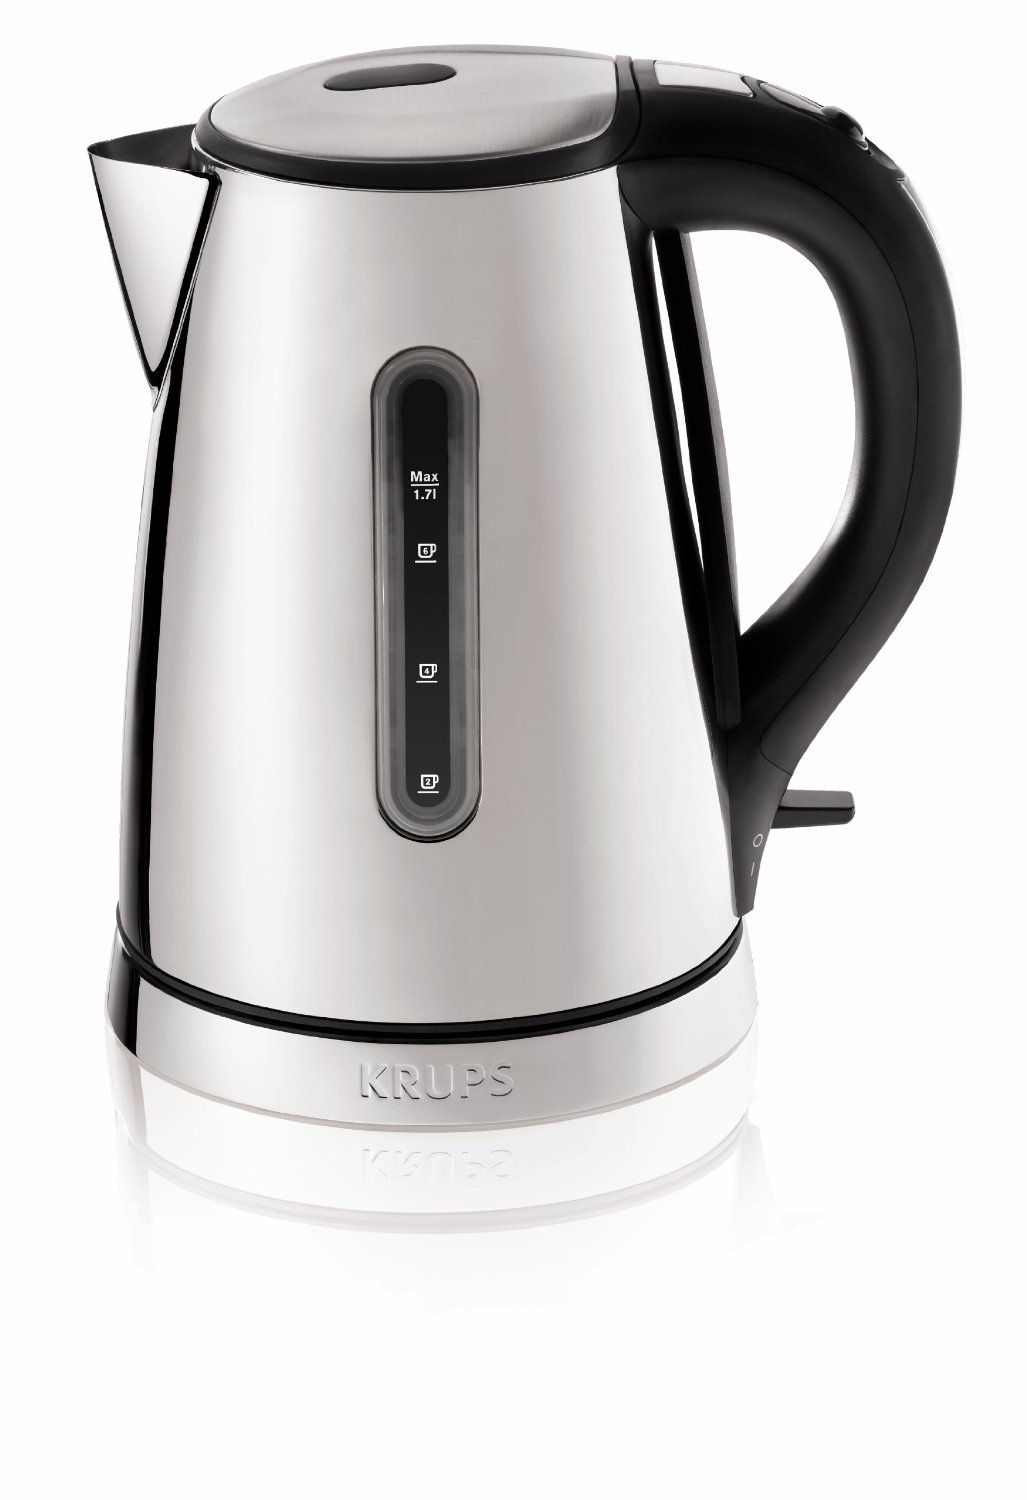 Krups Beakfast Black and Stainless Steel Kettle